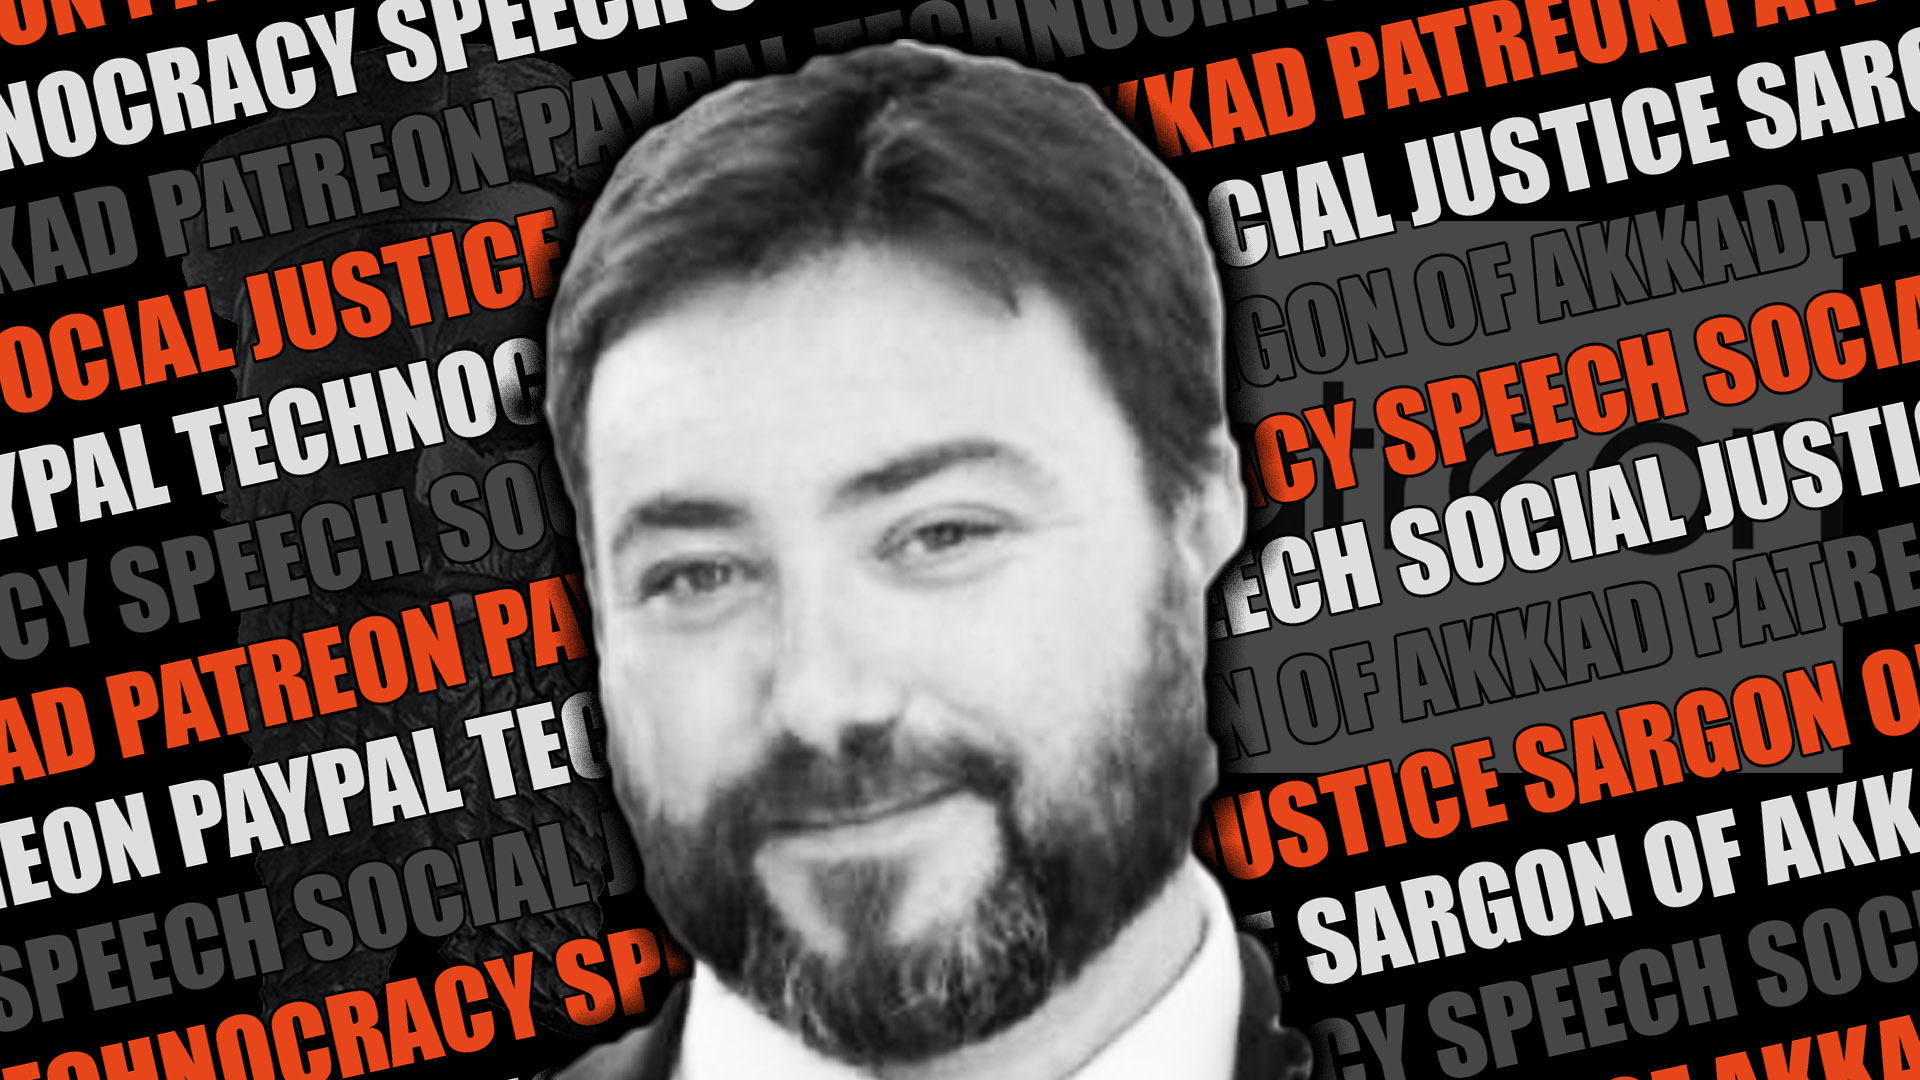 Patreon Sargon And The Technocracy